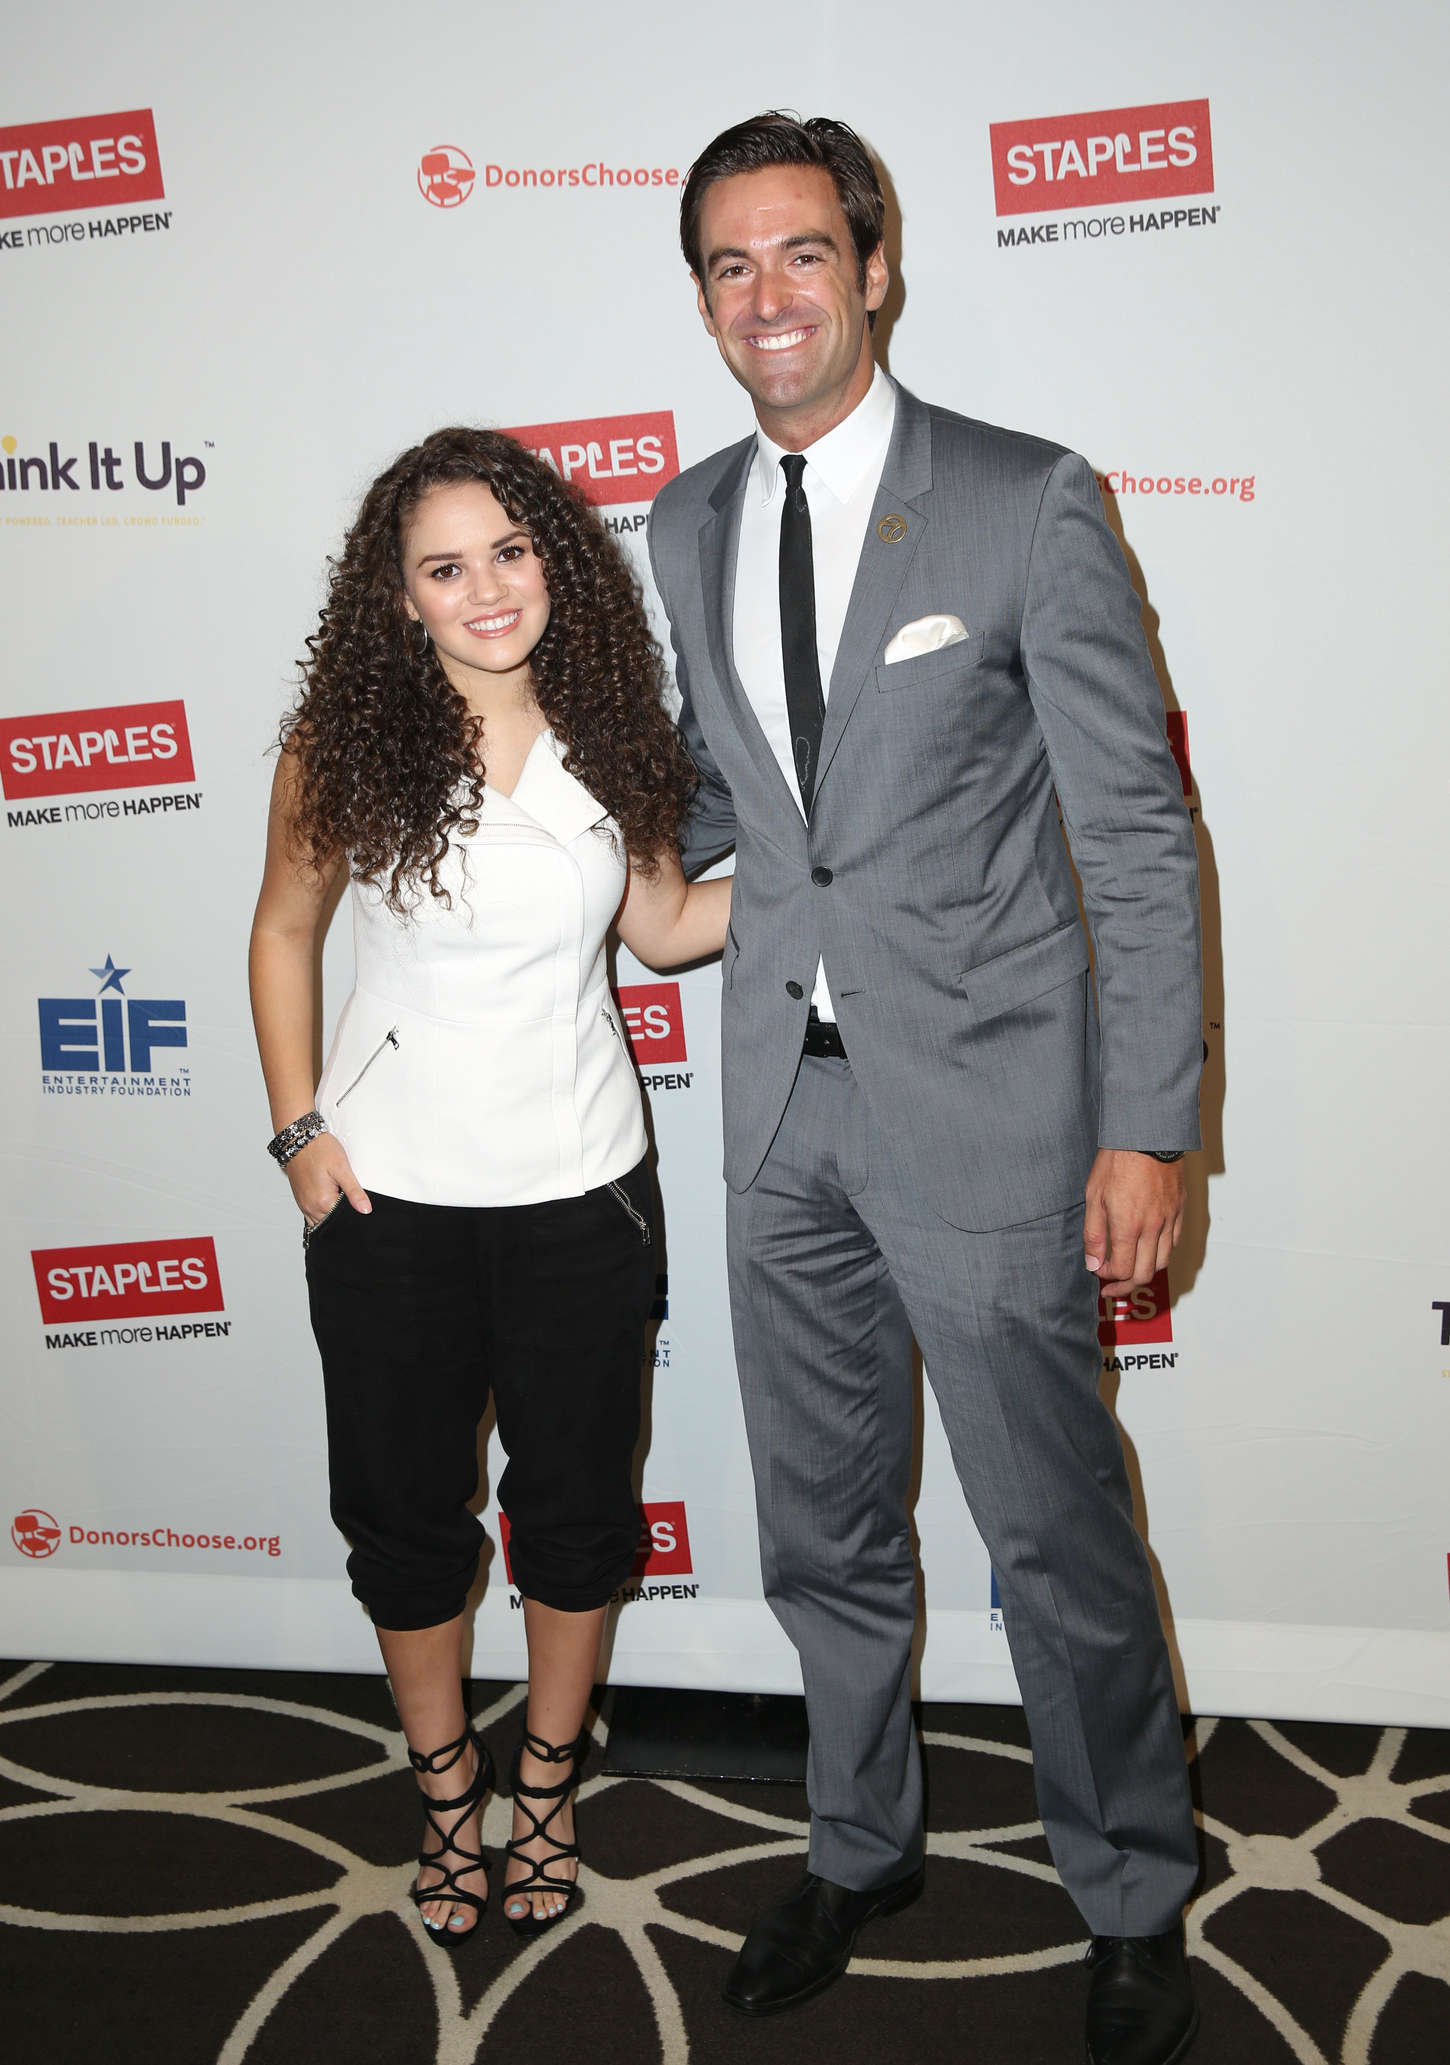 Madison Pettis Staples Think It Up Initiative press conference in Hollywood